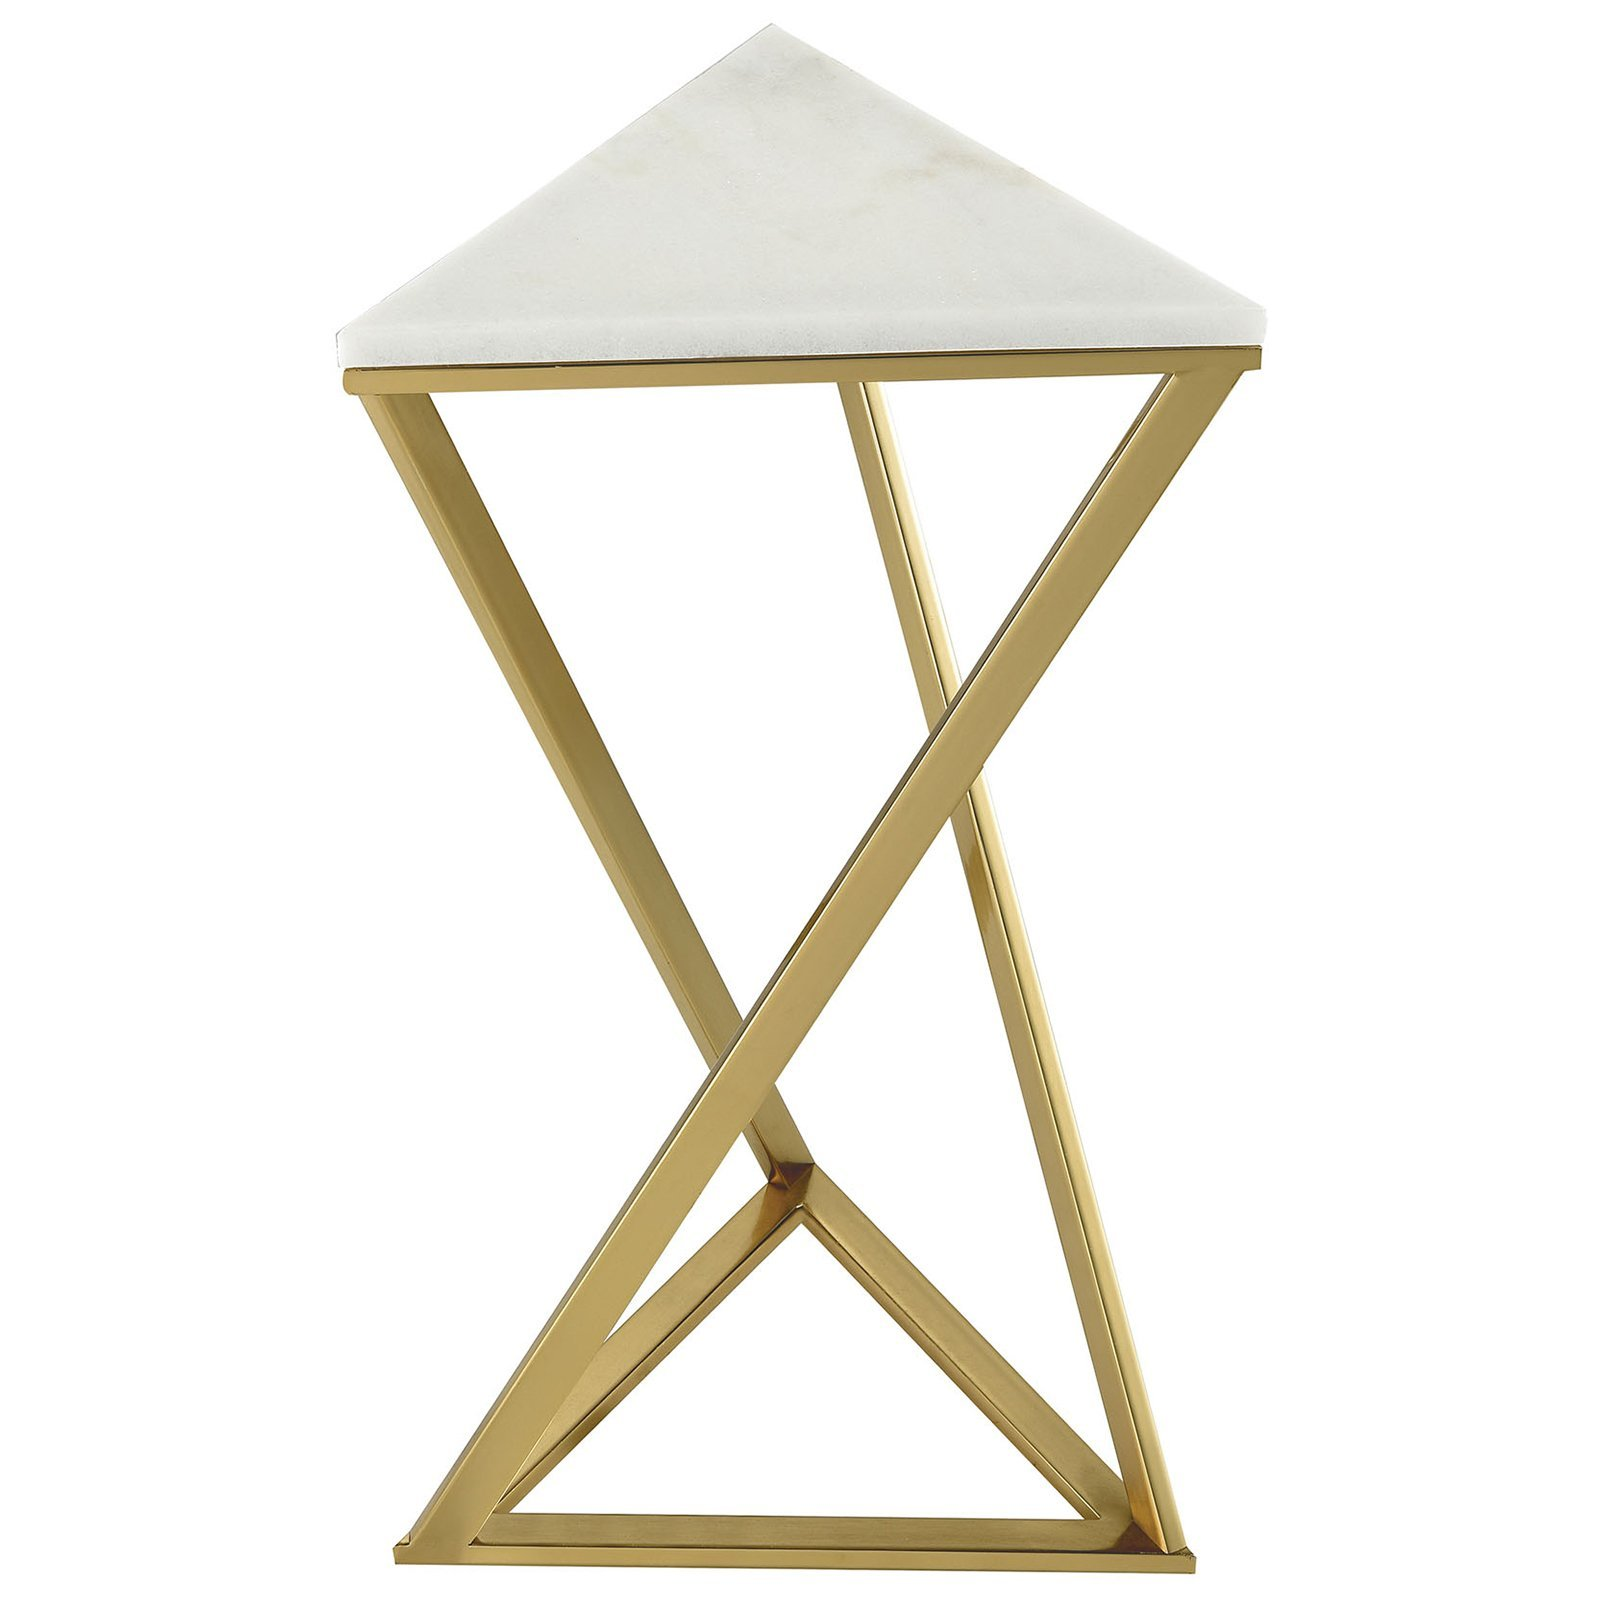 garde contemporary accent tables white fratantoni lifestyles gold metal table plated with genuine marble top thomasville end funky outdoor furniture lamp target chaise teal chair